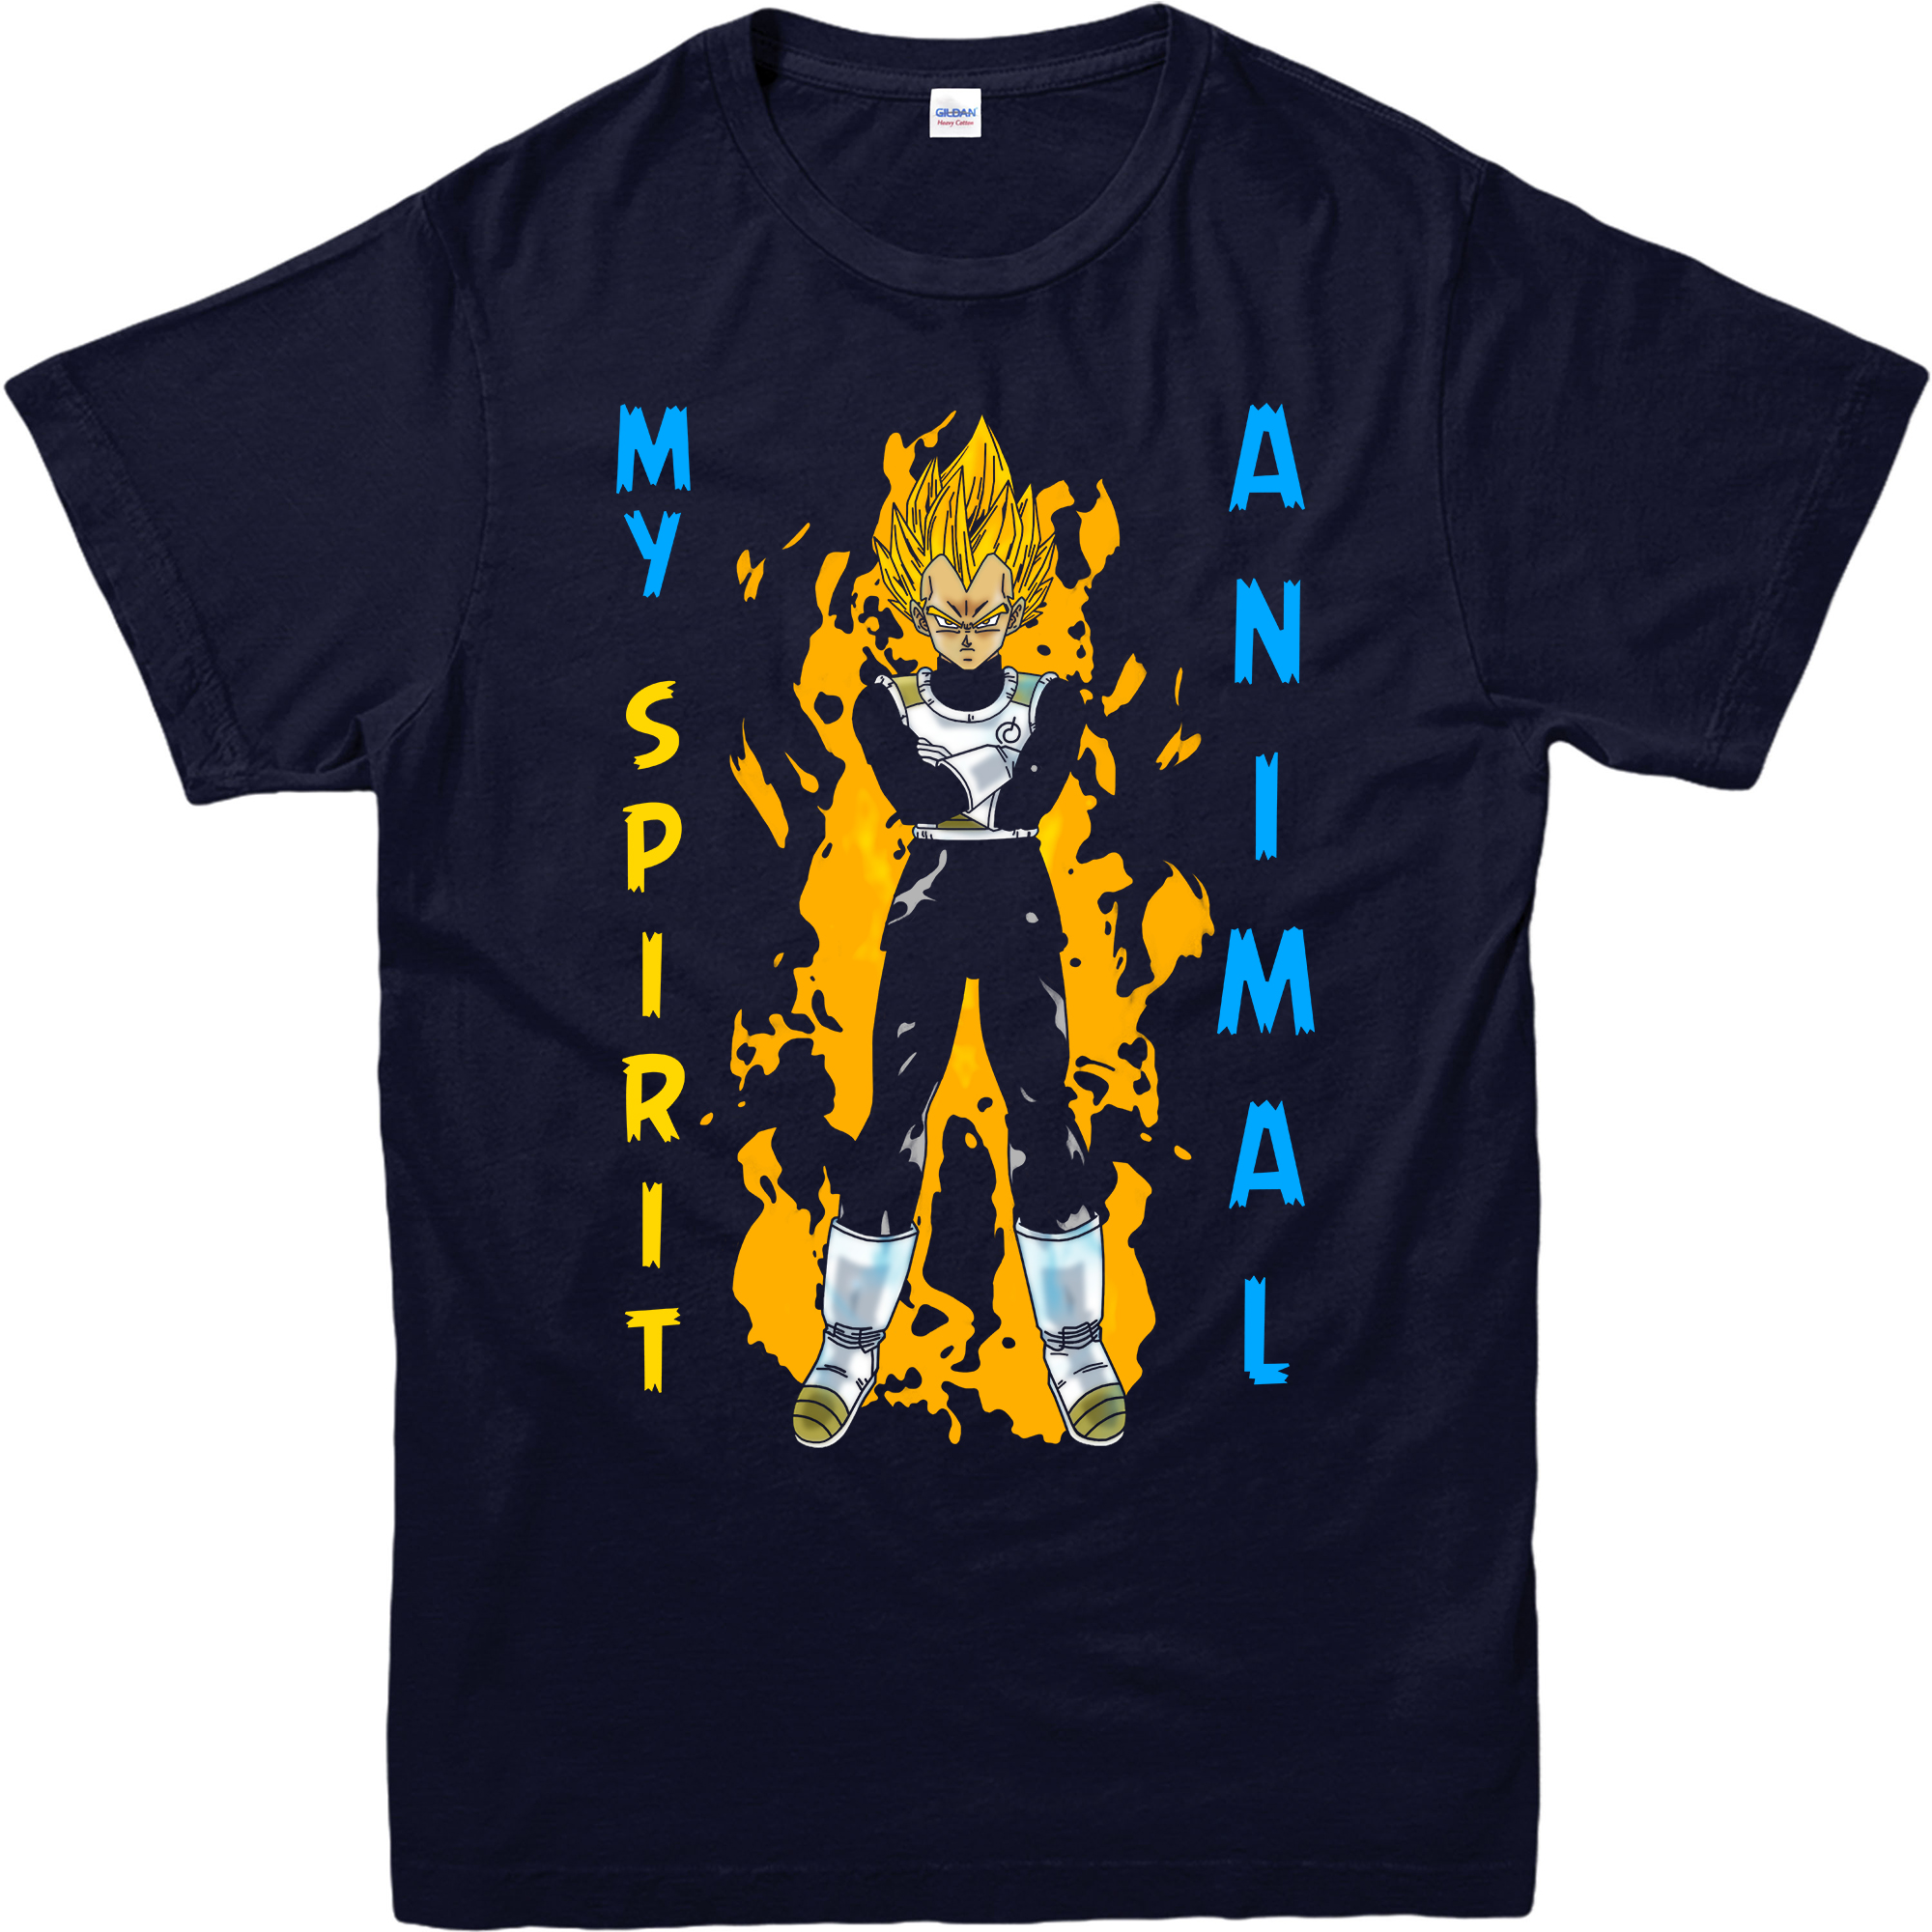 vegeta is my spirit animal T Shirt dragon ball Z goku Japanese Comics top Free shipping Harajuku Tops Fashion Classic Unique in T Shirts from Men 39 s Clothing